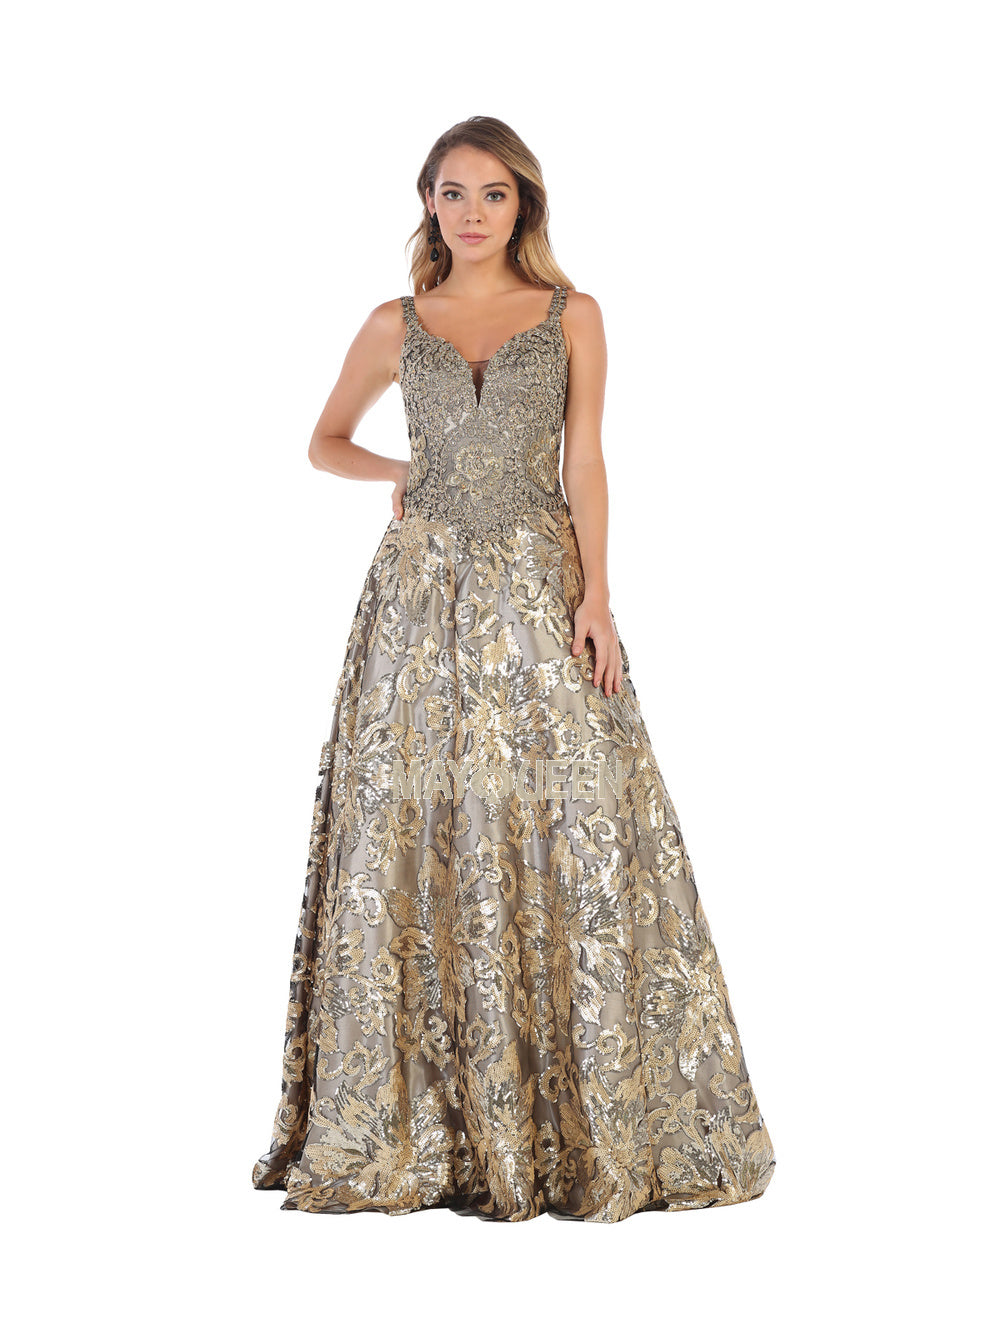 Mayqueen Size Chart E MQ 7655 - Sequin Wide V-Neck A-Line Long Dress with Lace Applique - Diggz Prom